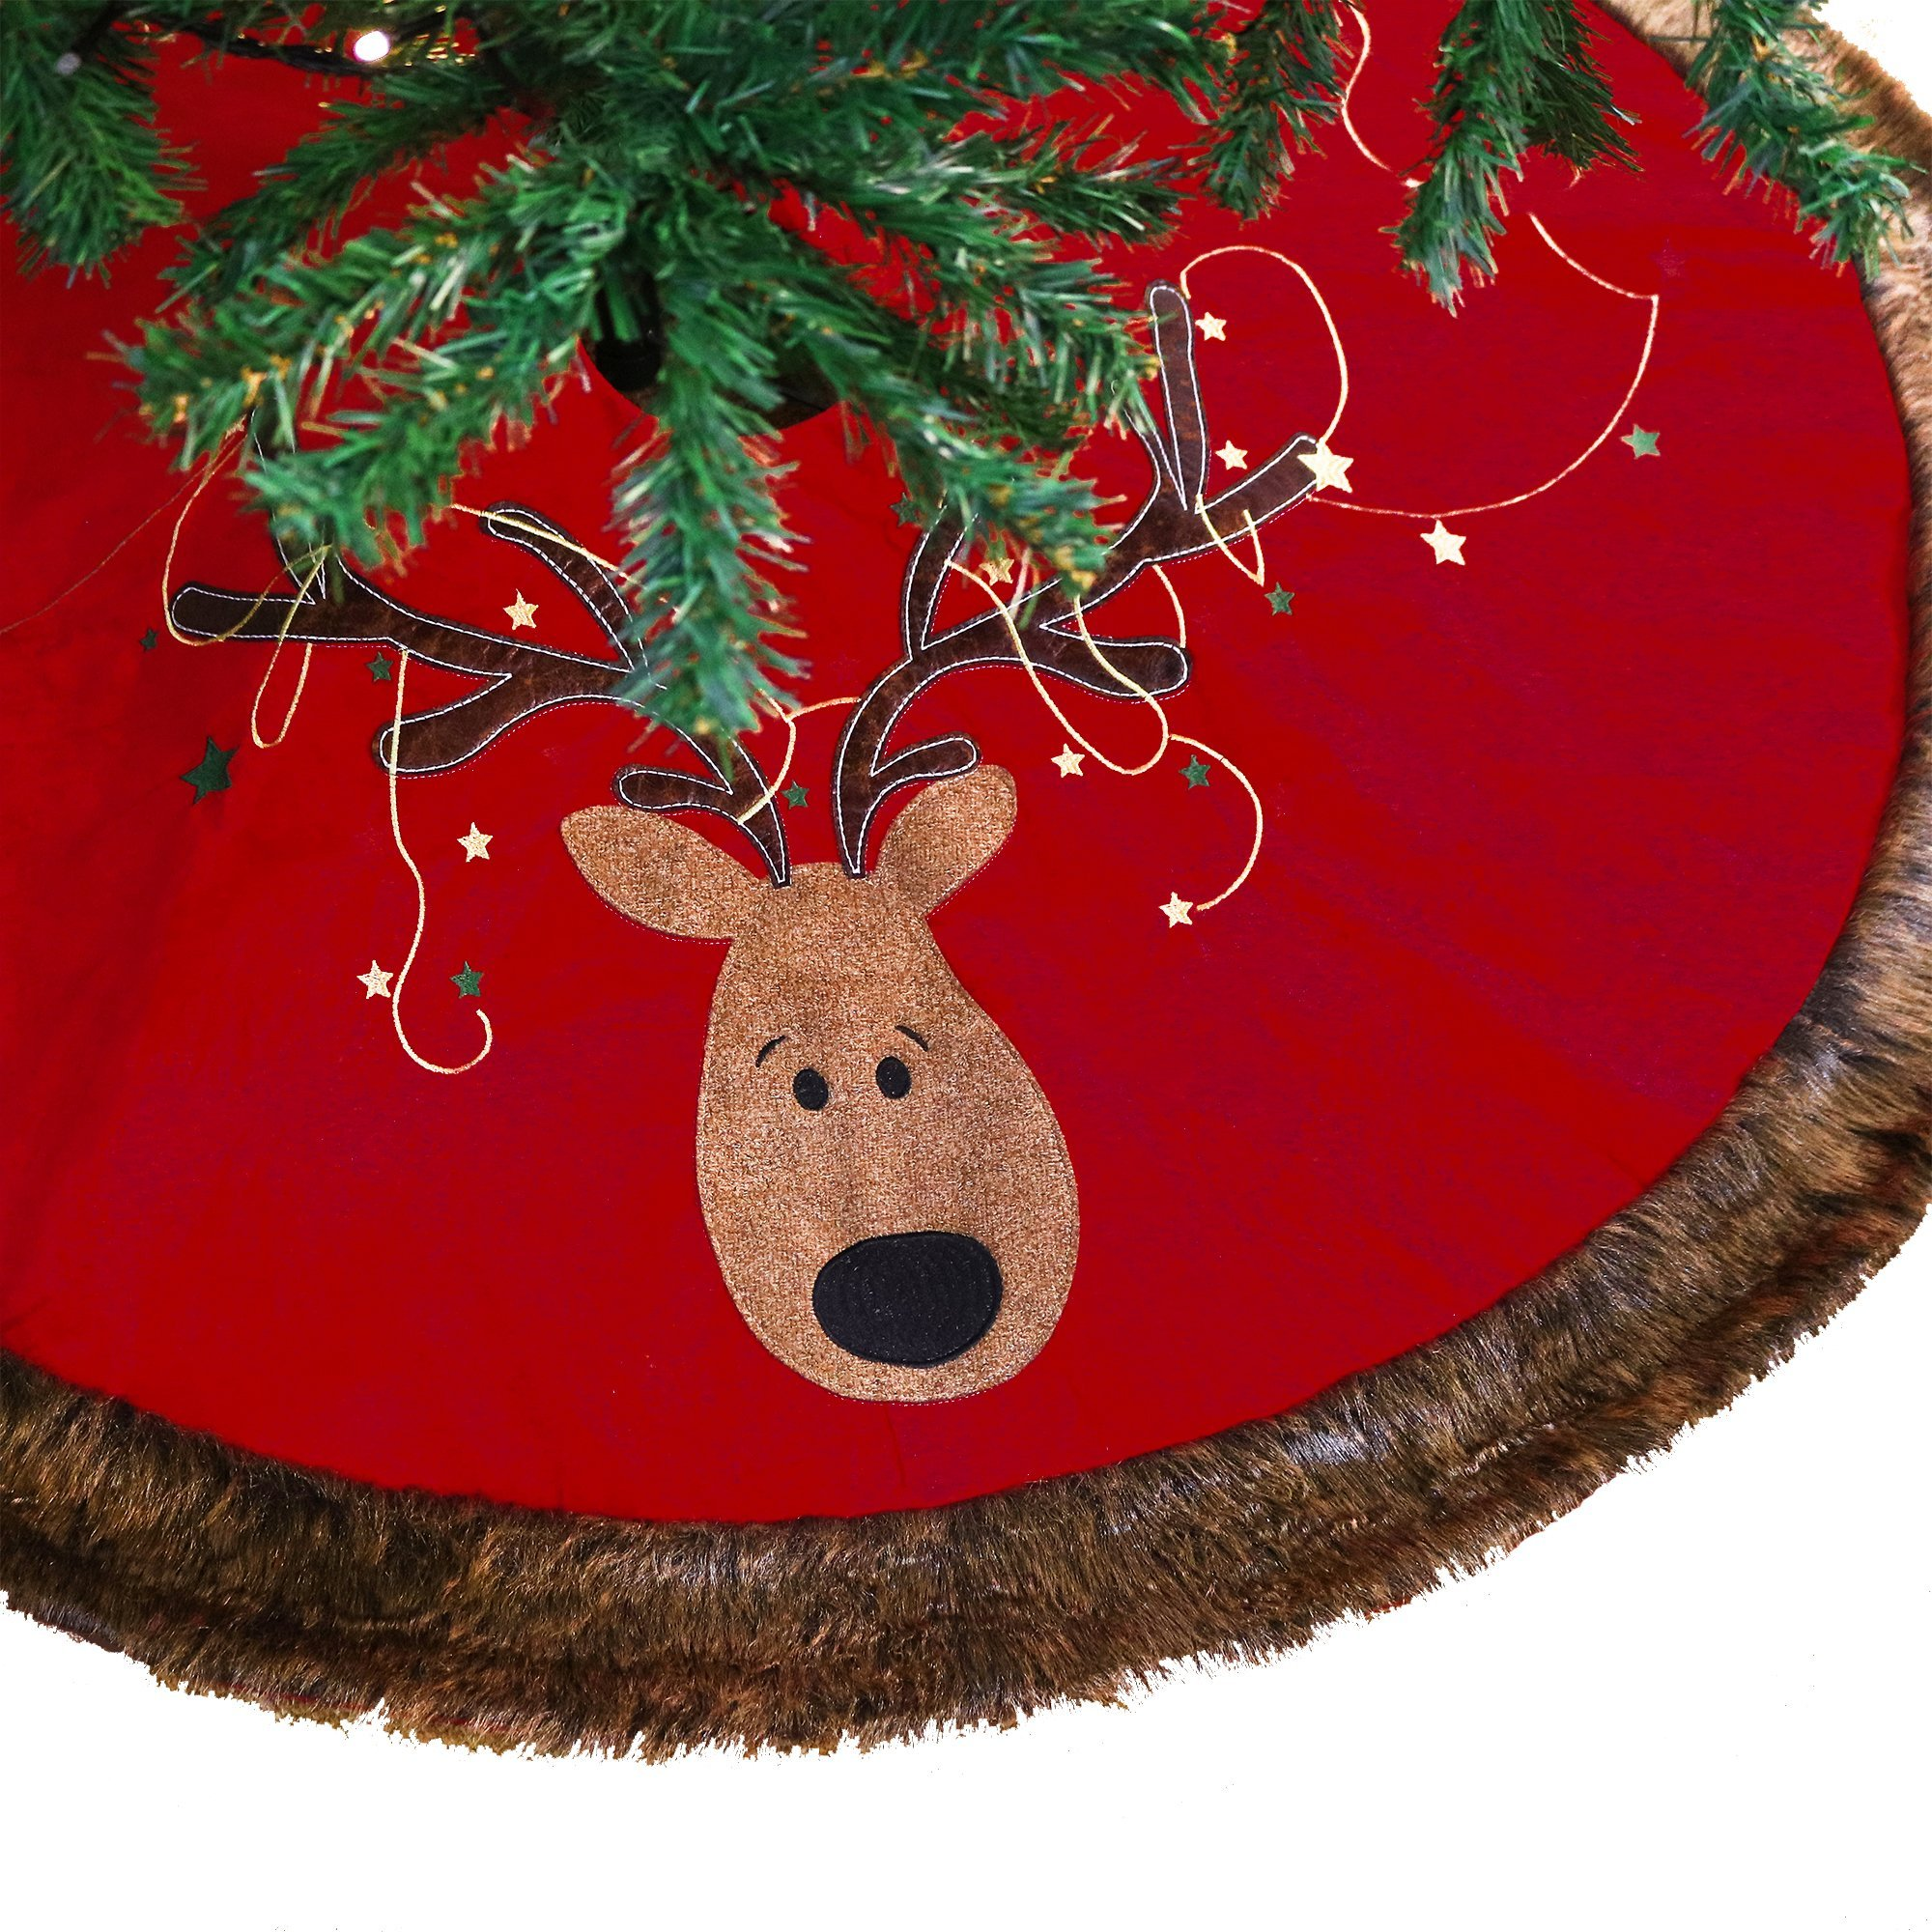 V&M VALERY MADELYN 48'' TREE SKIRT-RED, GREEN&GOLD DEER